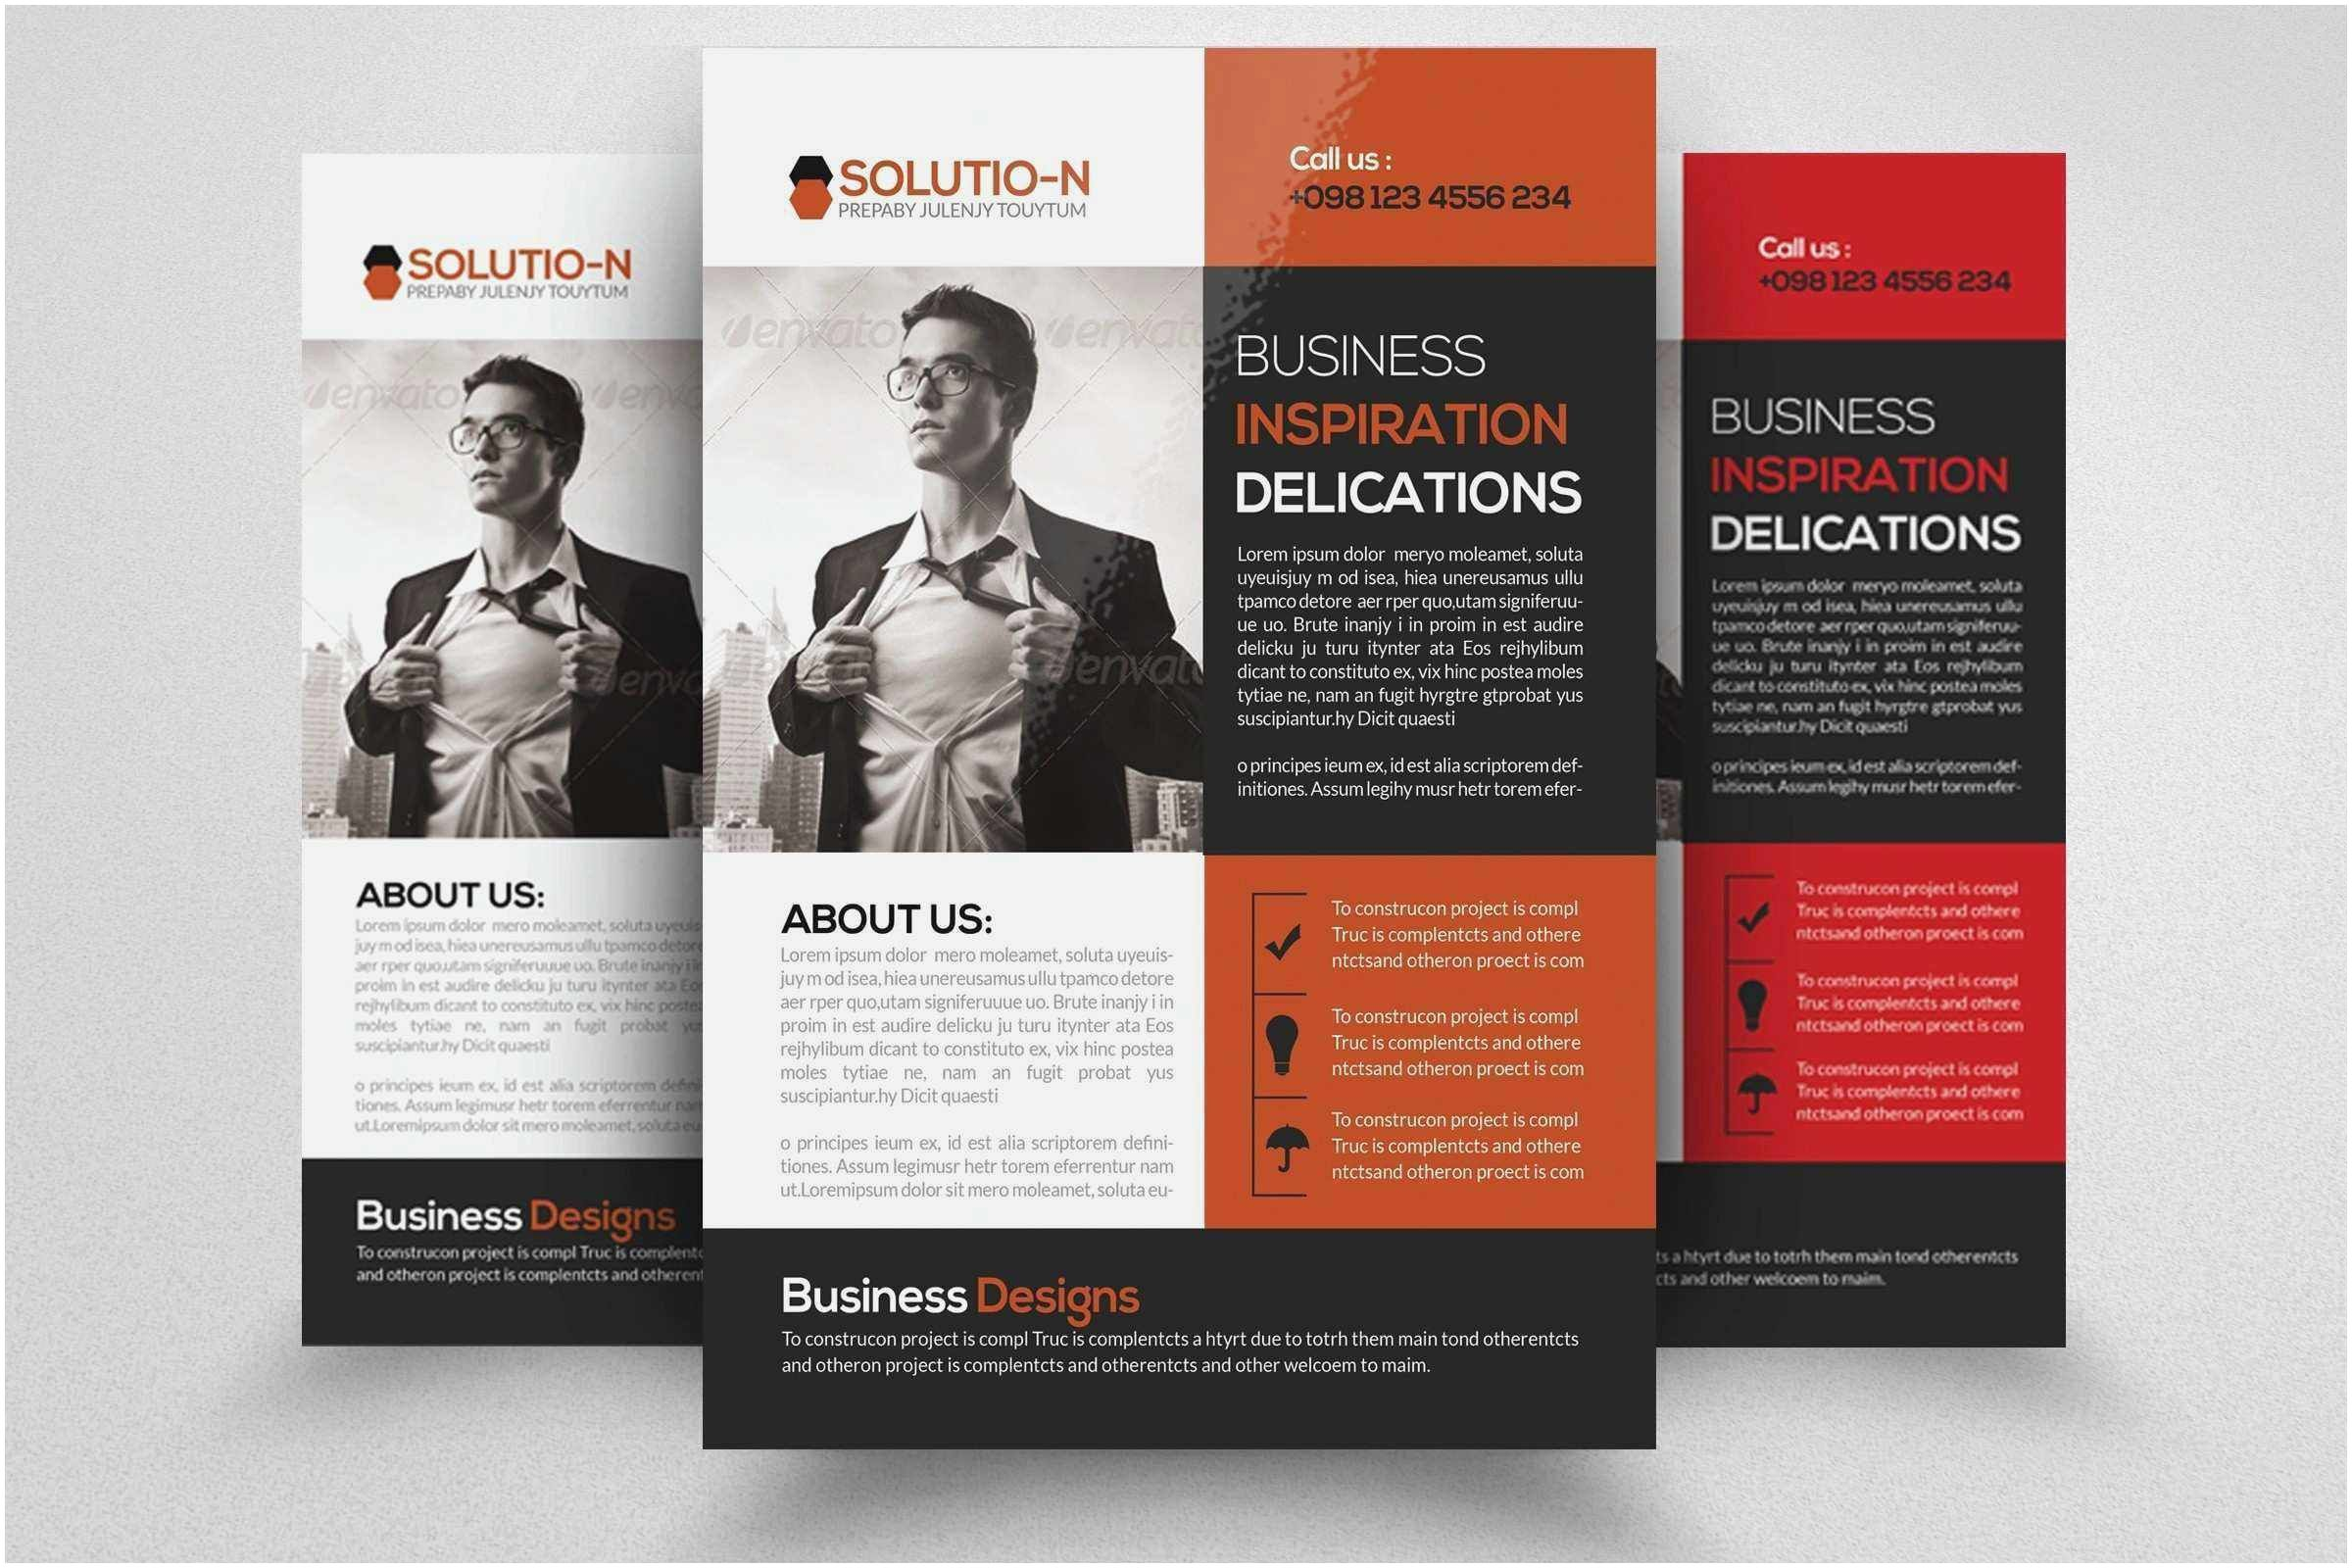 Home Business Magazine Advertising Download Advertising Flyer Poster Template Free Poster Templates 0d